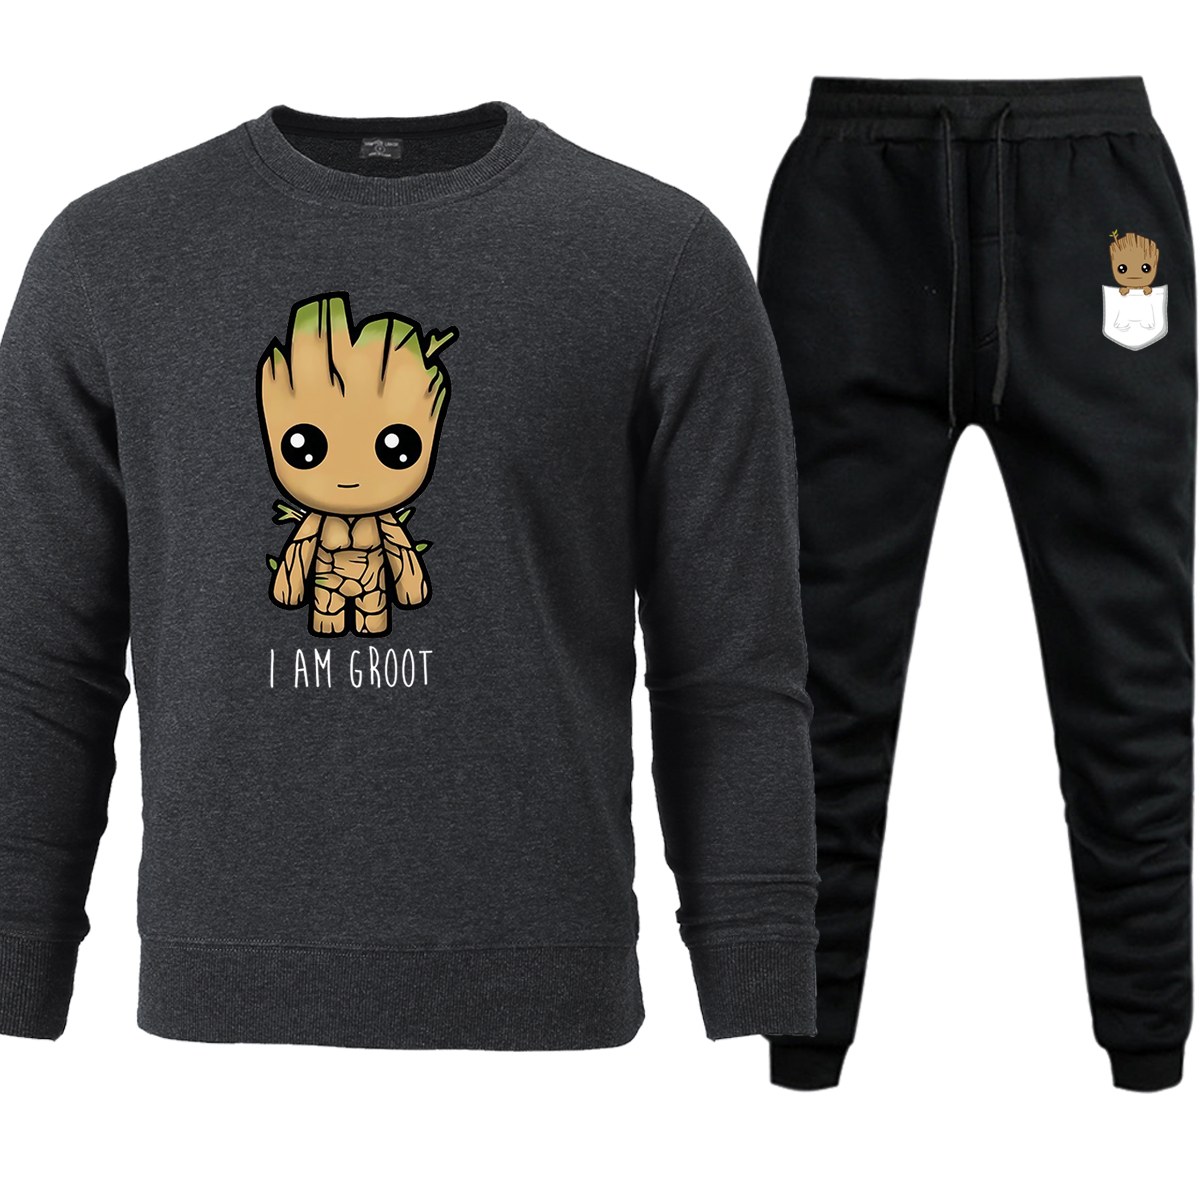 I Am Groot Mens Sets Sweatshirt+Pant 2019 Autumn Winter Fleece Warm Casual Avengers Hip Hop Sweatpants Men Pullovers Set Pant